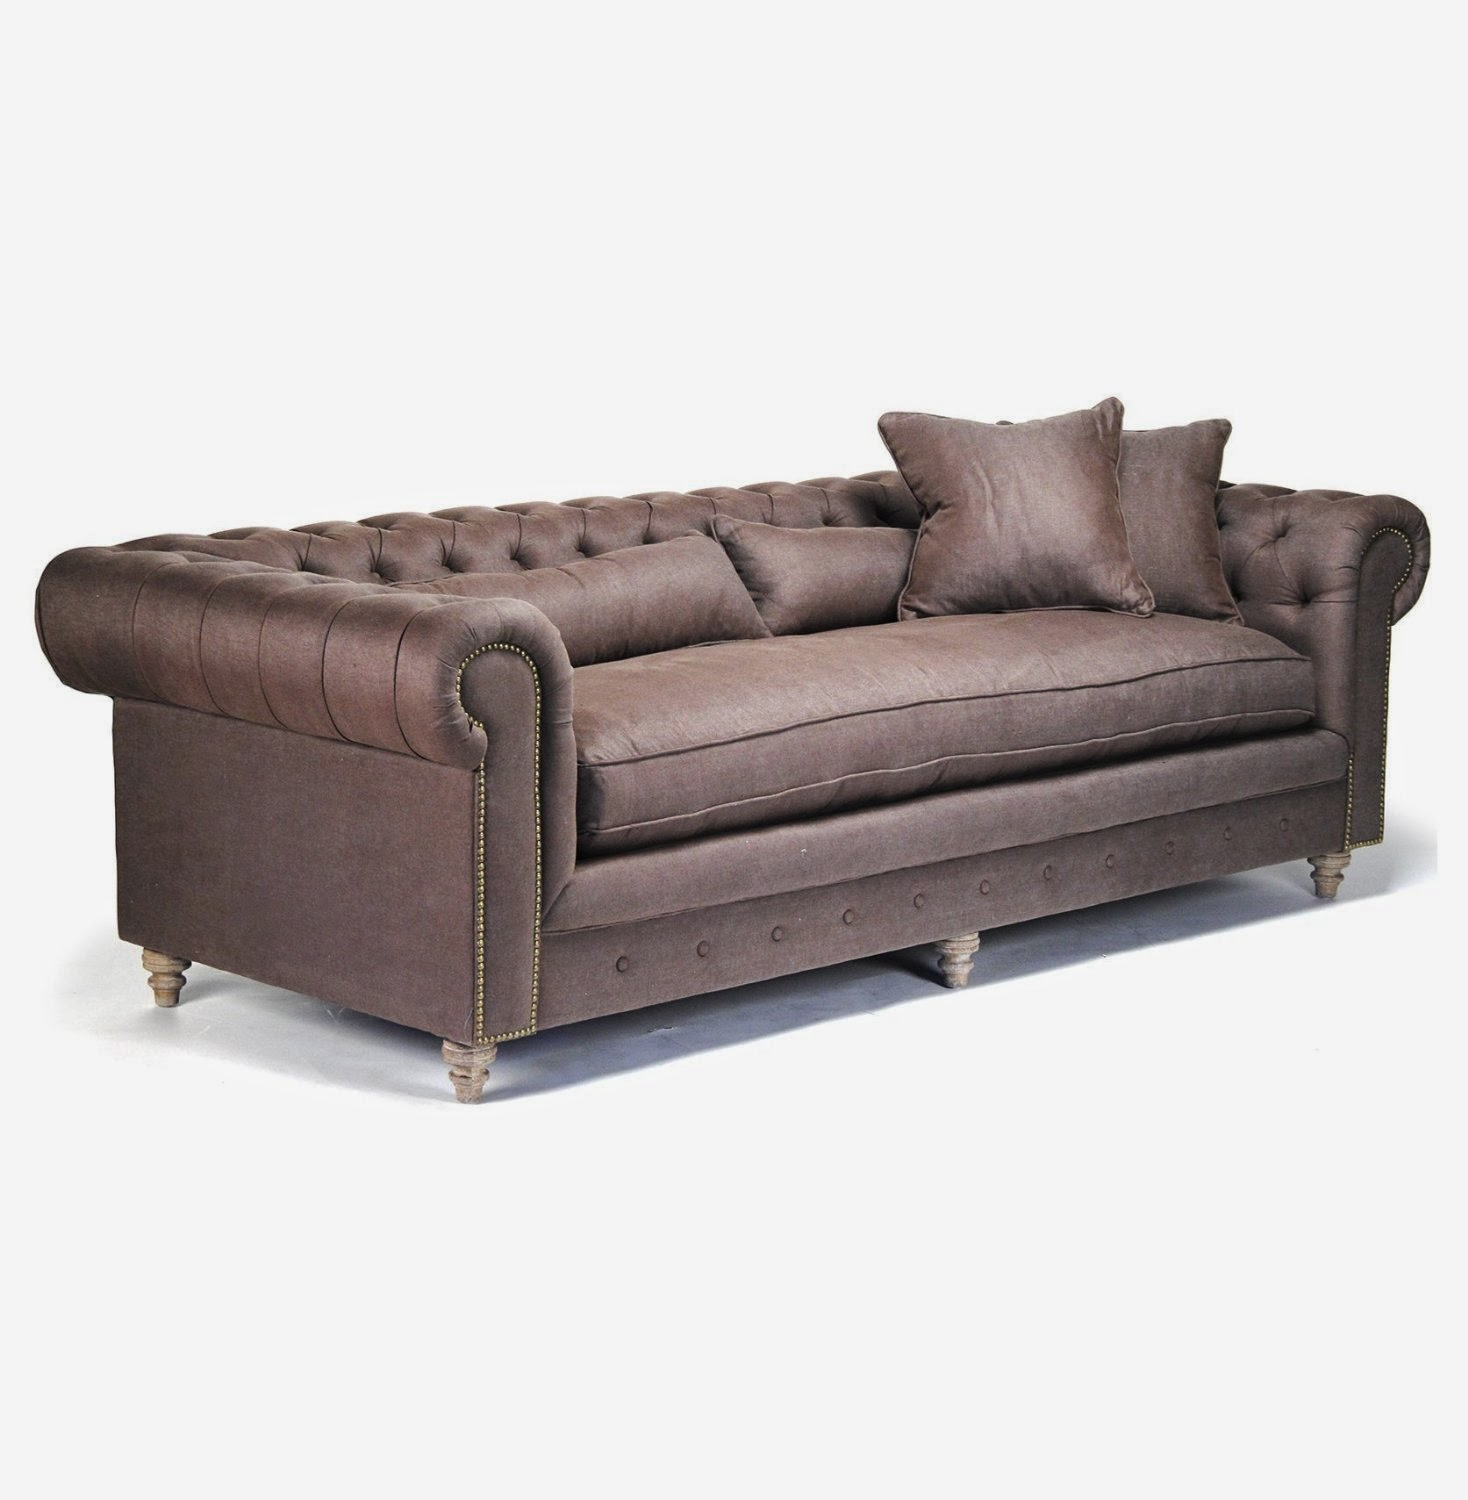 chesterfield couch. Black Bedroom Furniture Sets. Home Design Ideas